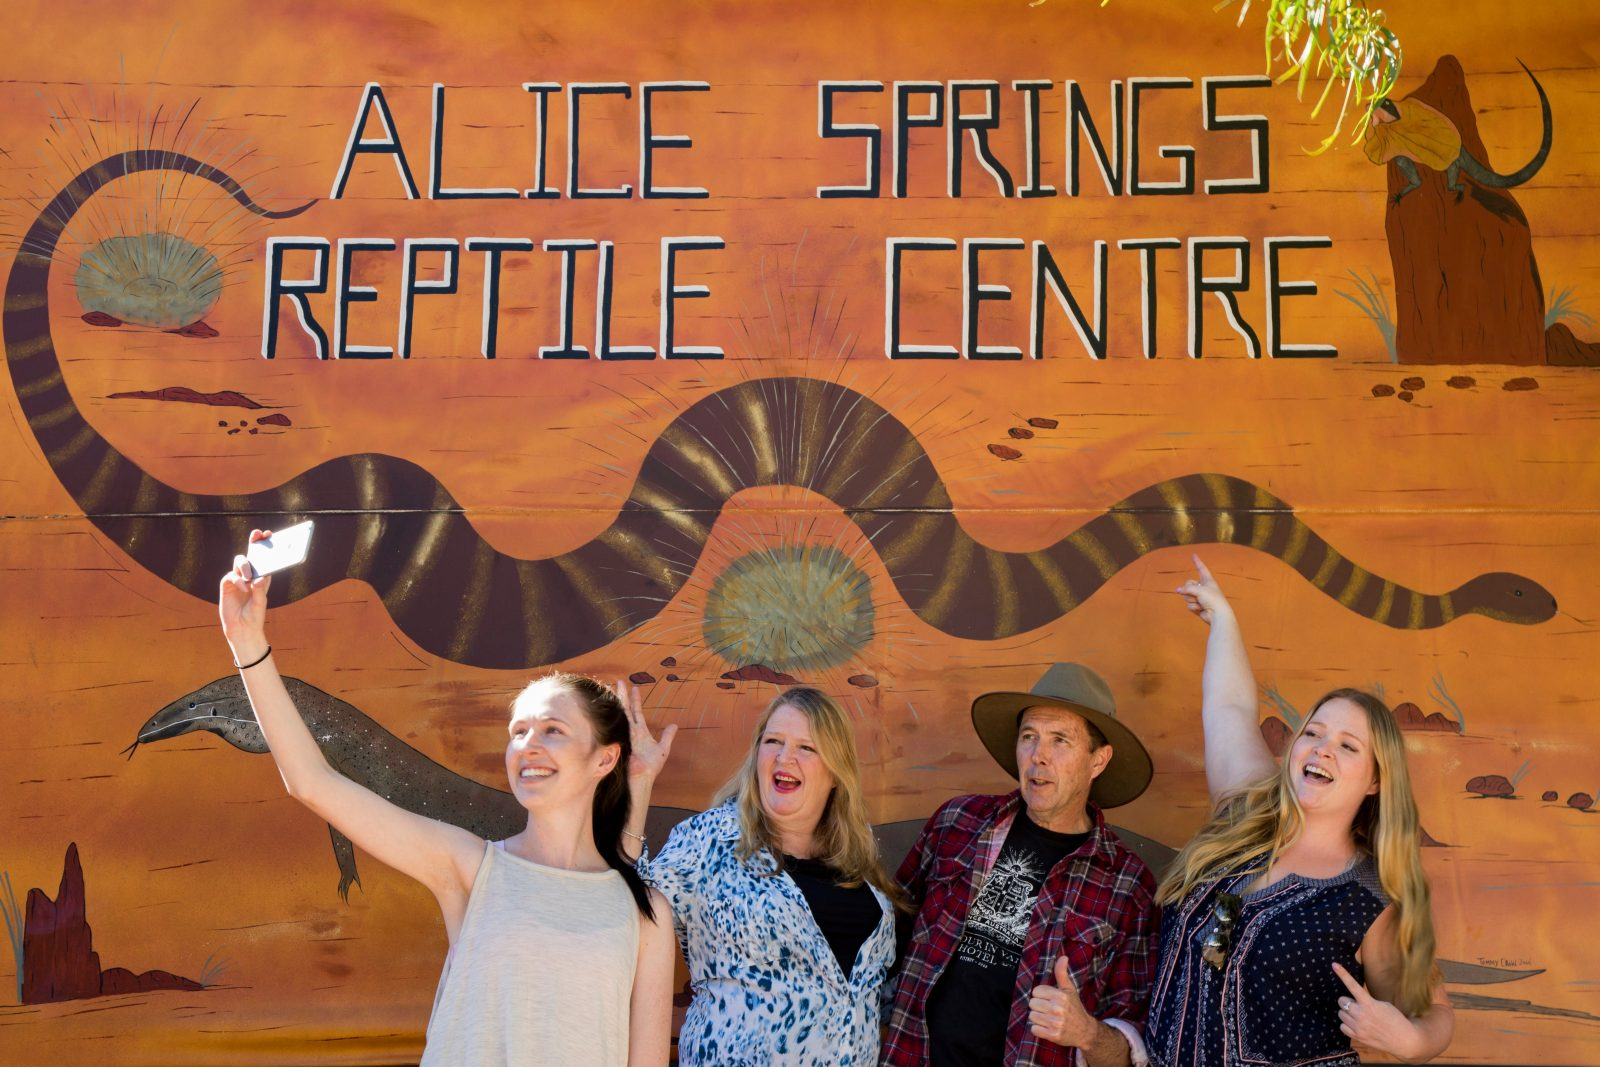 Alice Springs Reptile Centre has the largest collection of reptilian life in Central Australia